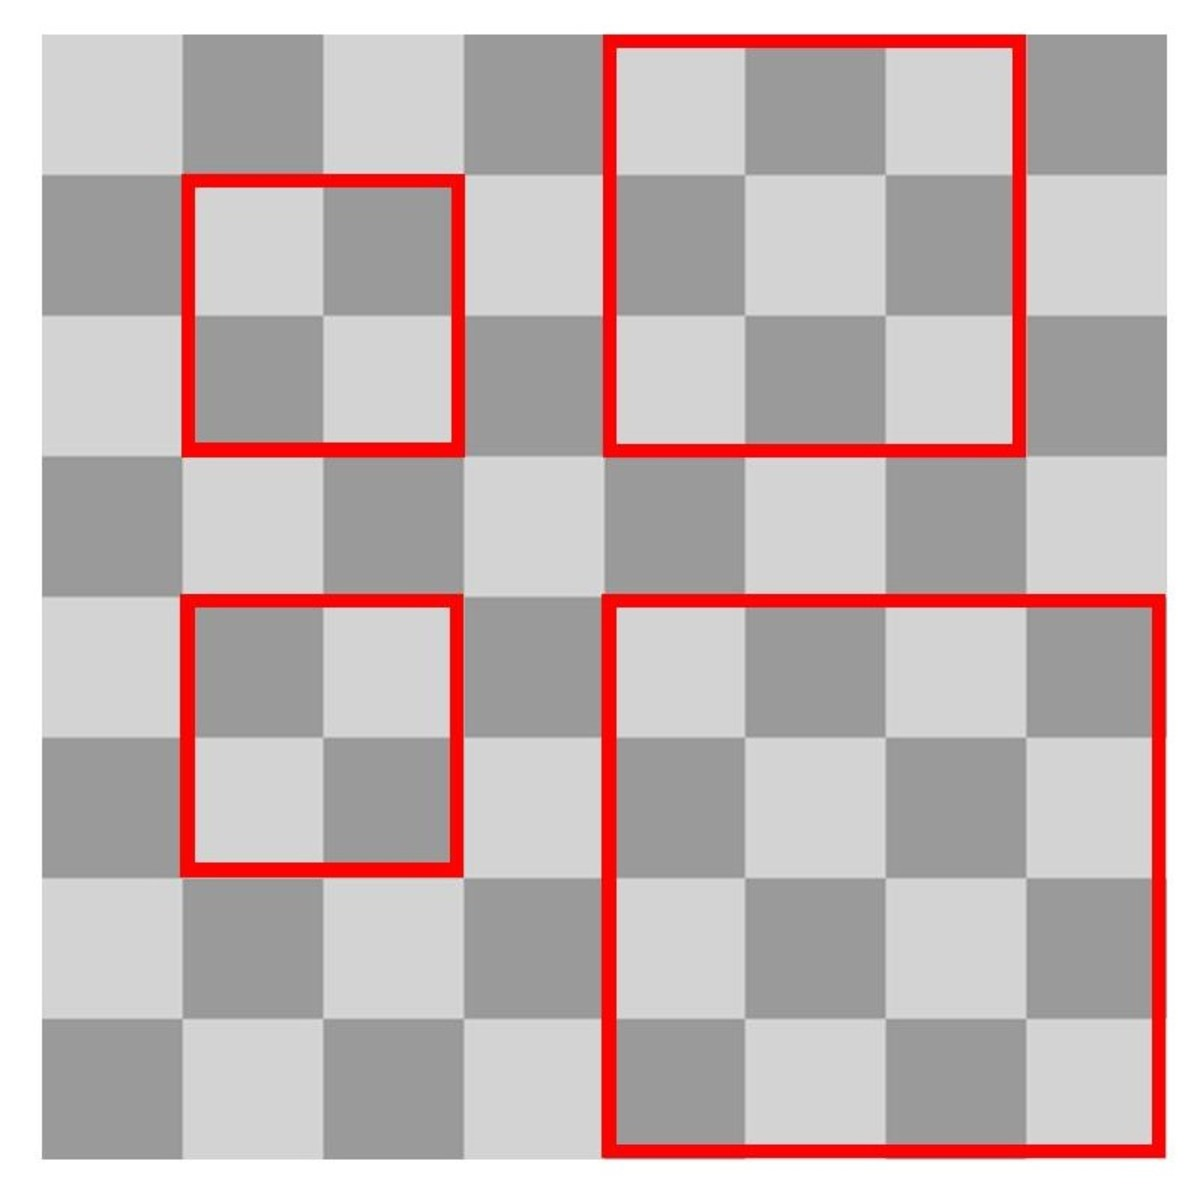 A Chessboard With Assorted Squares